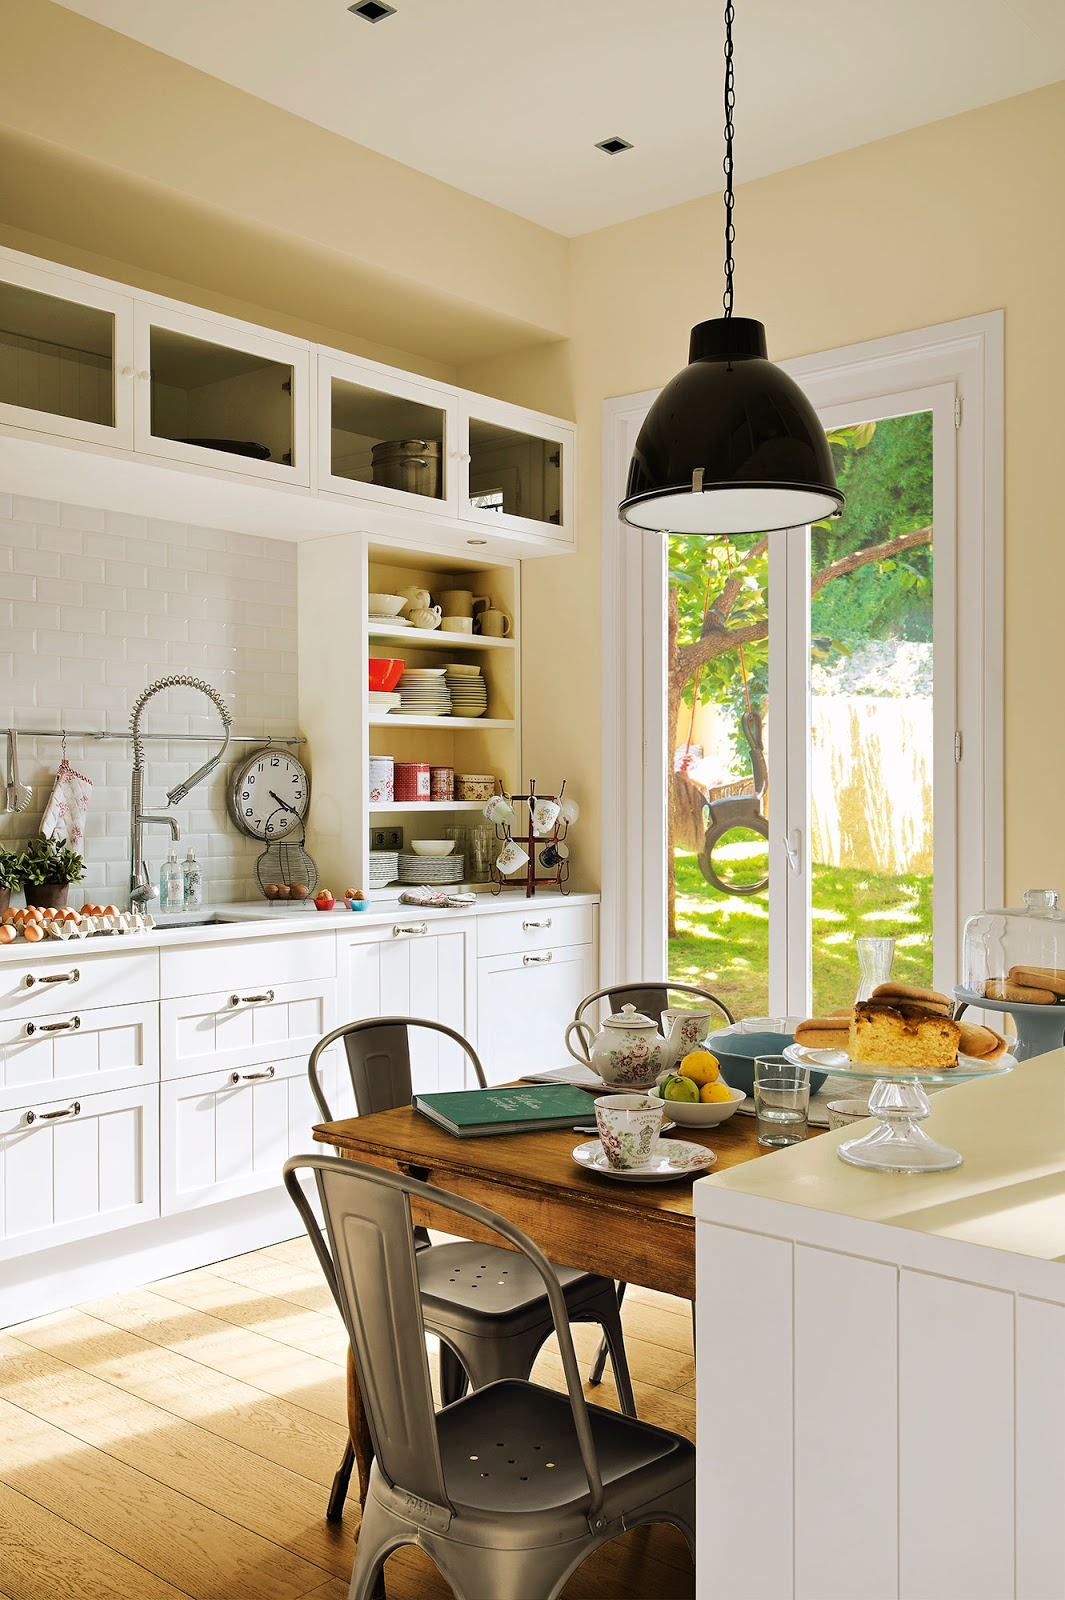 how to renovate a kitchen full circle brush 7 easy ideas in day home chic club